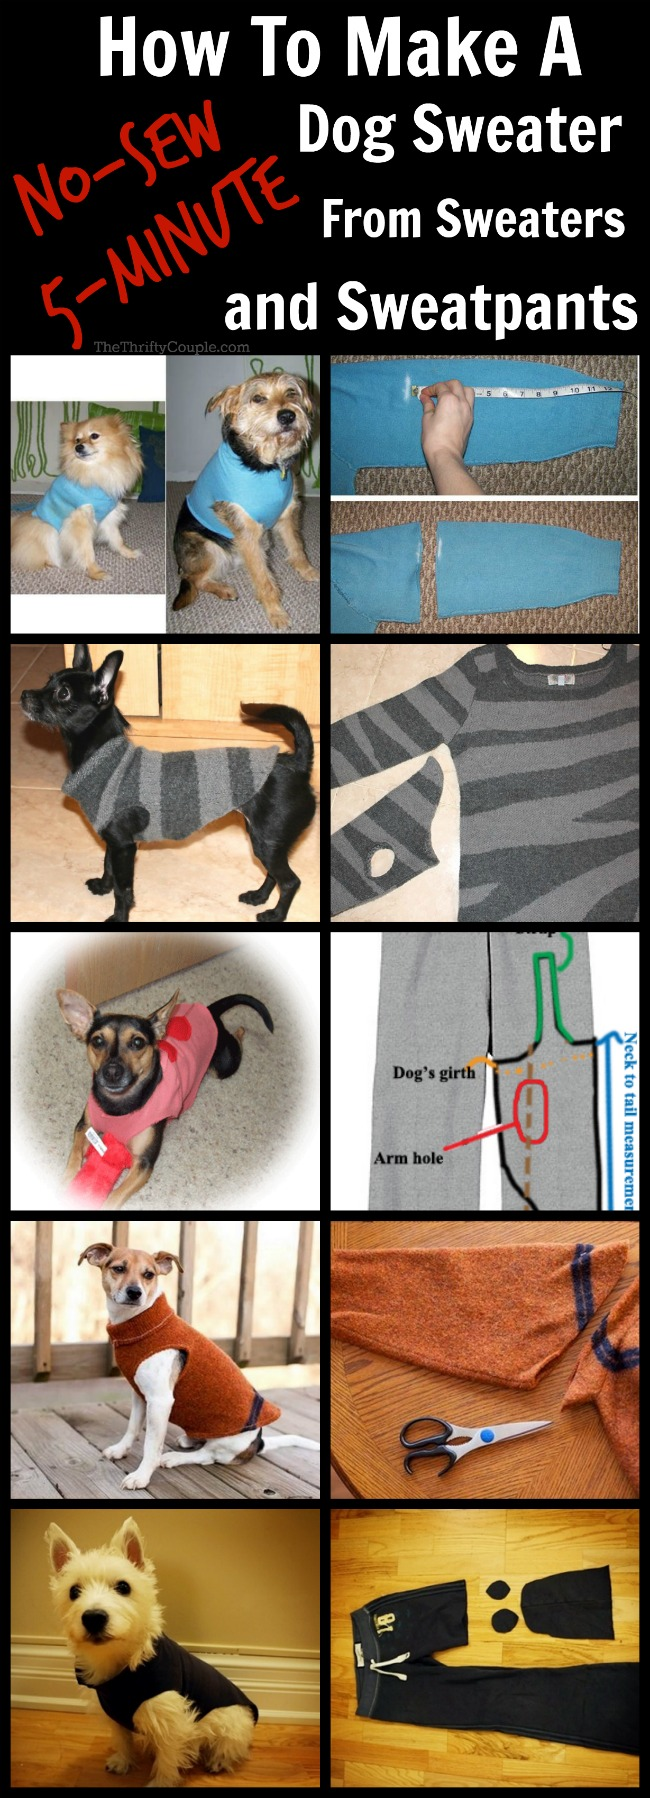 how-to-make-no-sew-dog-sweater-from-sweater-sweatpants-sweatshirt